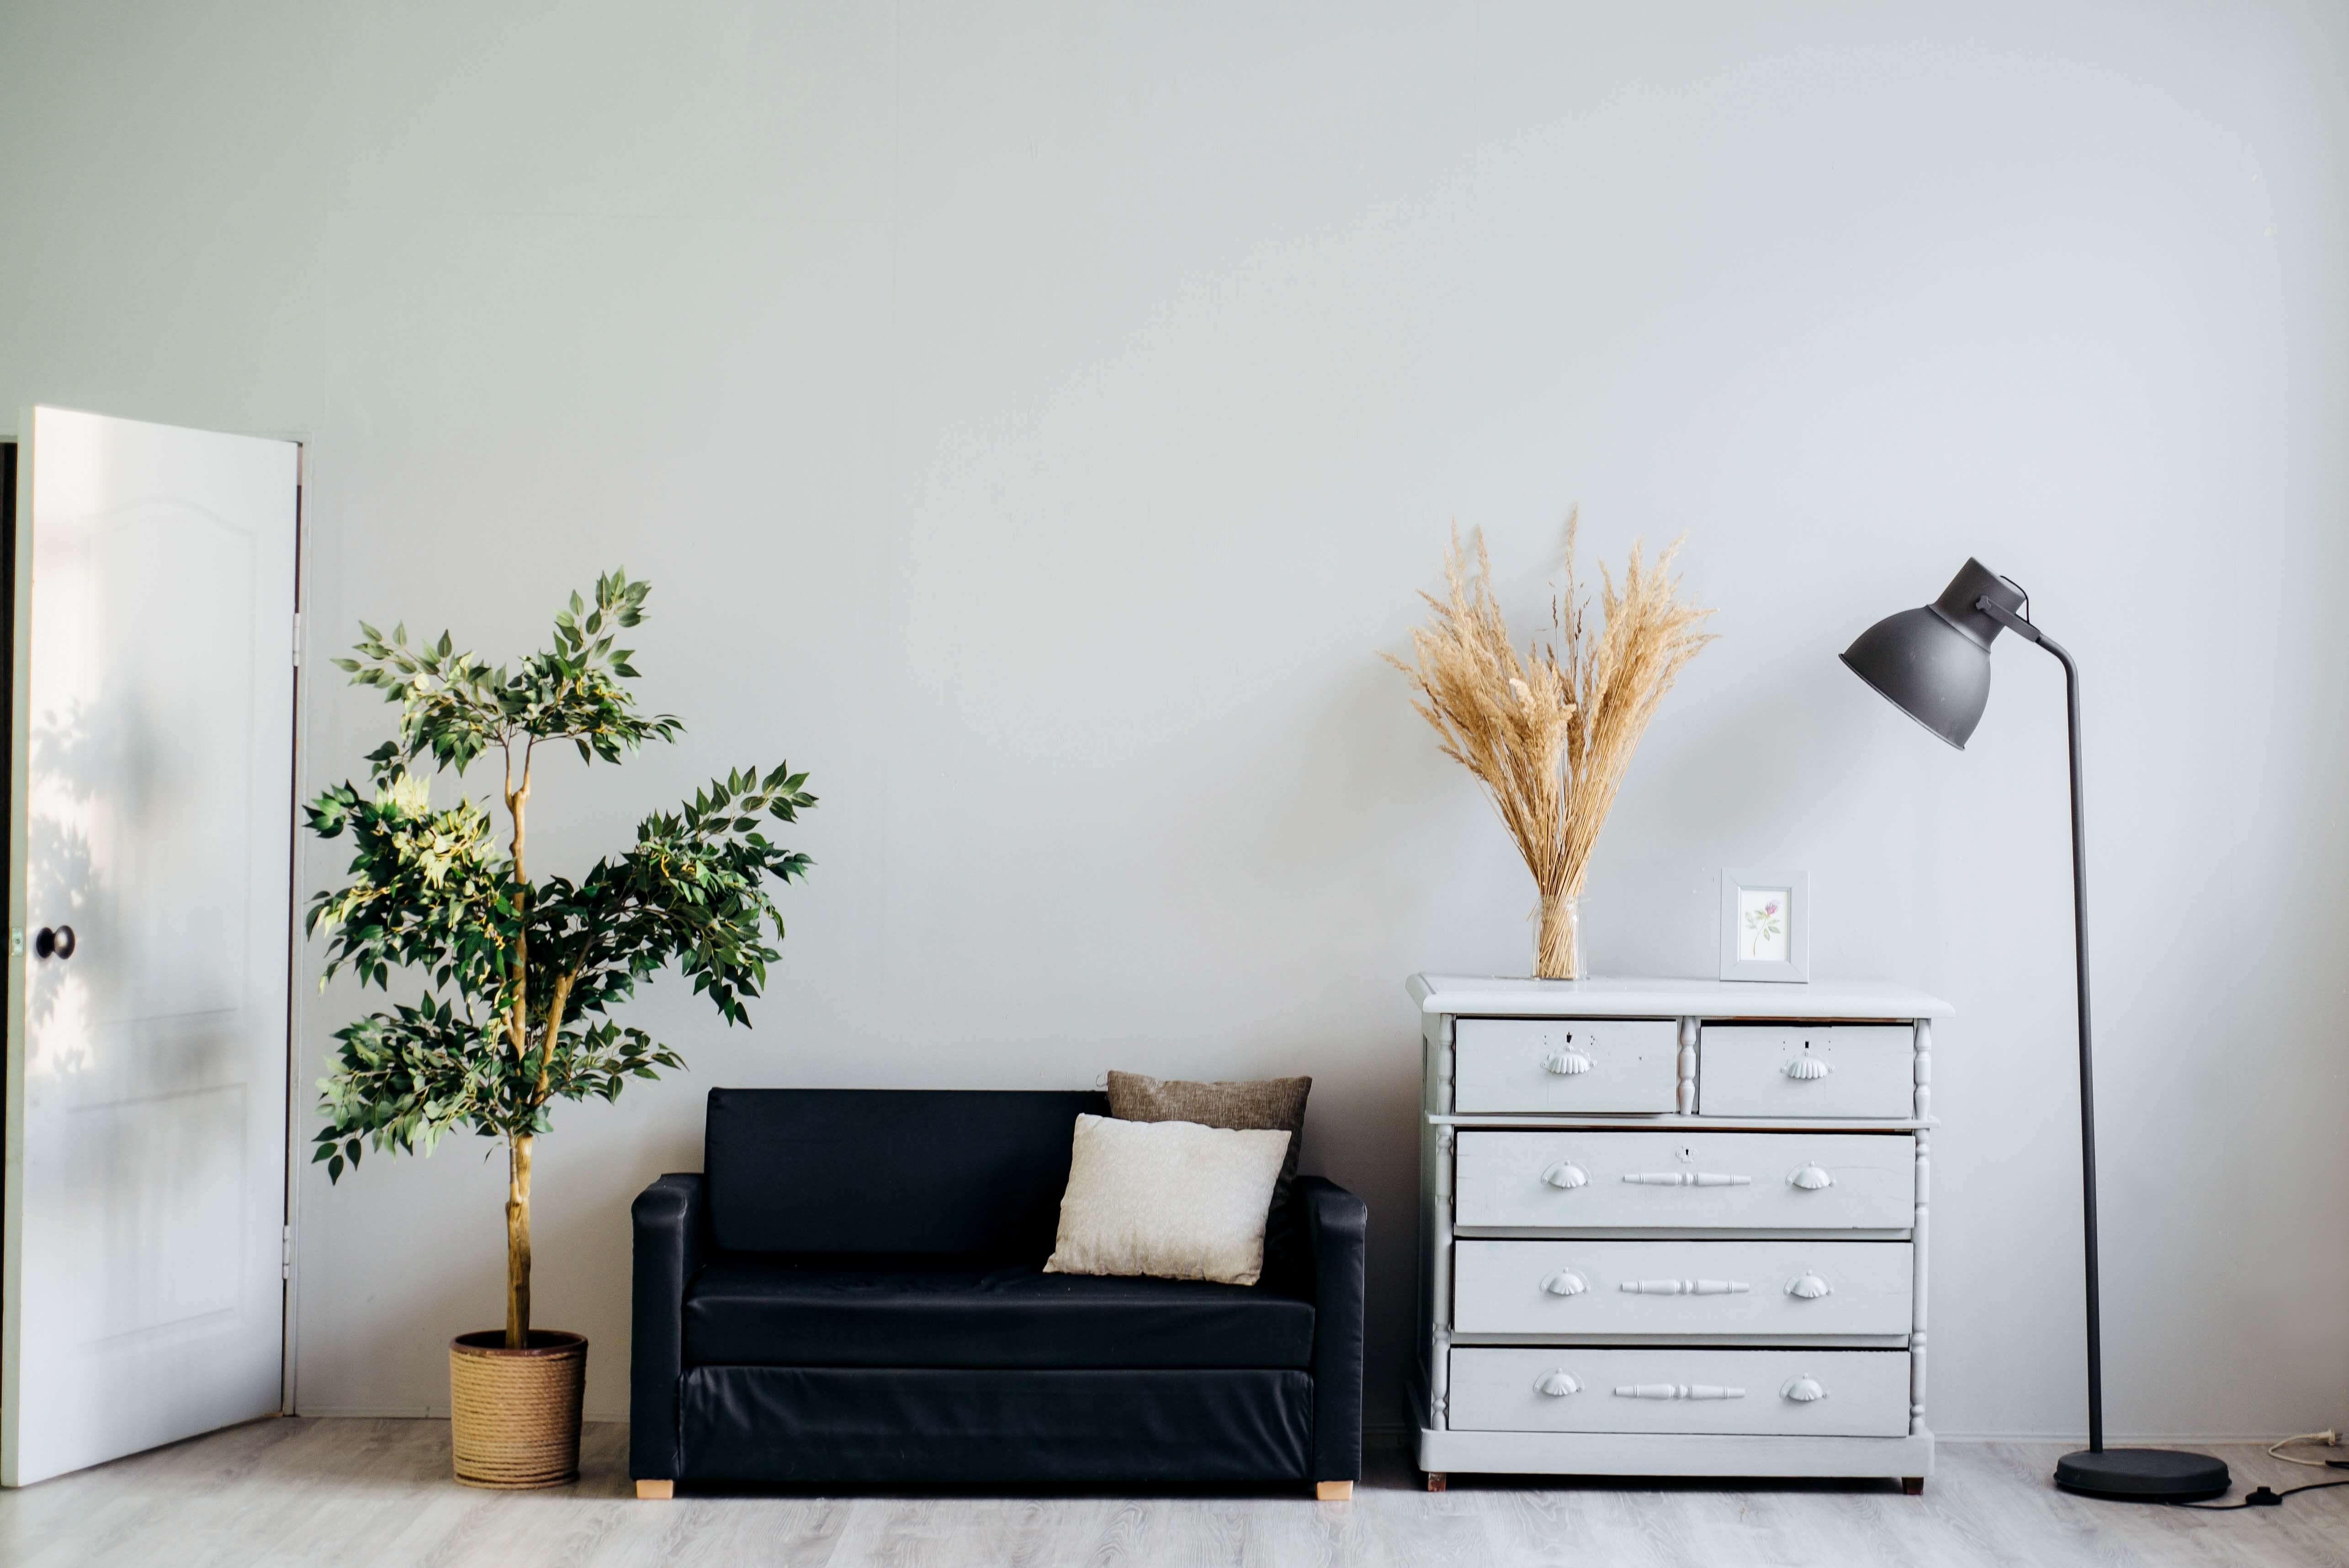 9 decluttering tips to live with less stuff